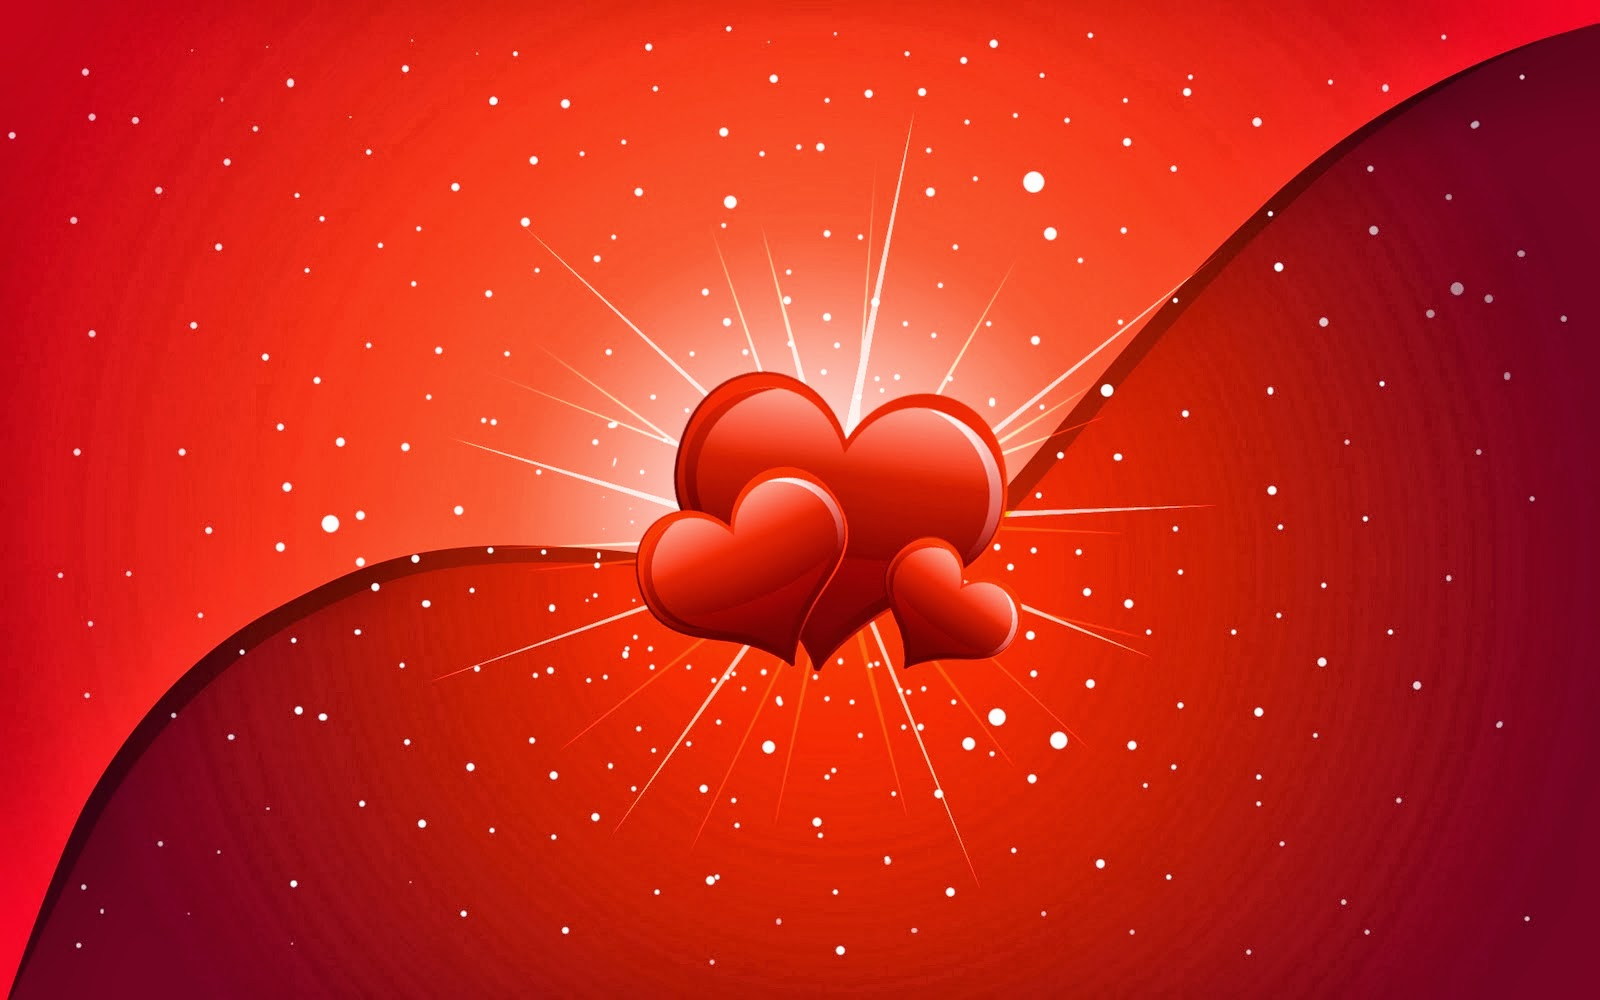 Valentines Day Desktop Wallpaper - WallpaperSafari